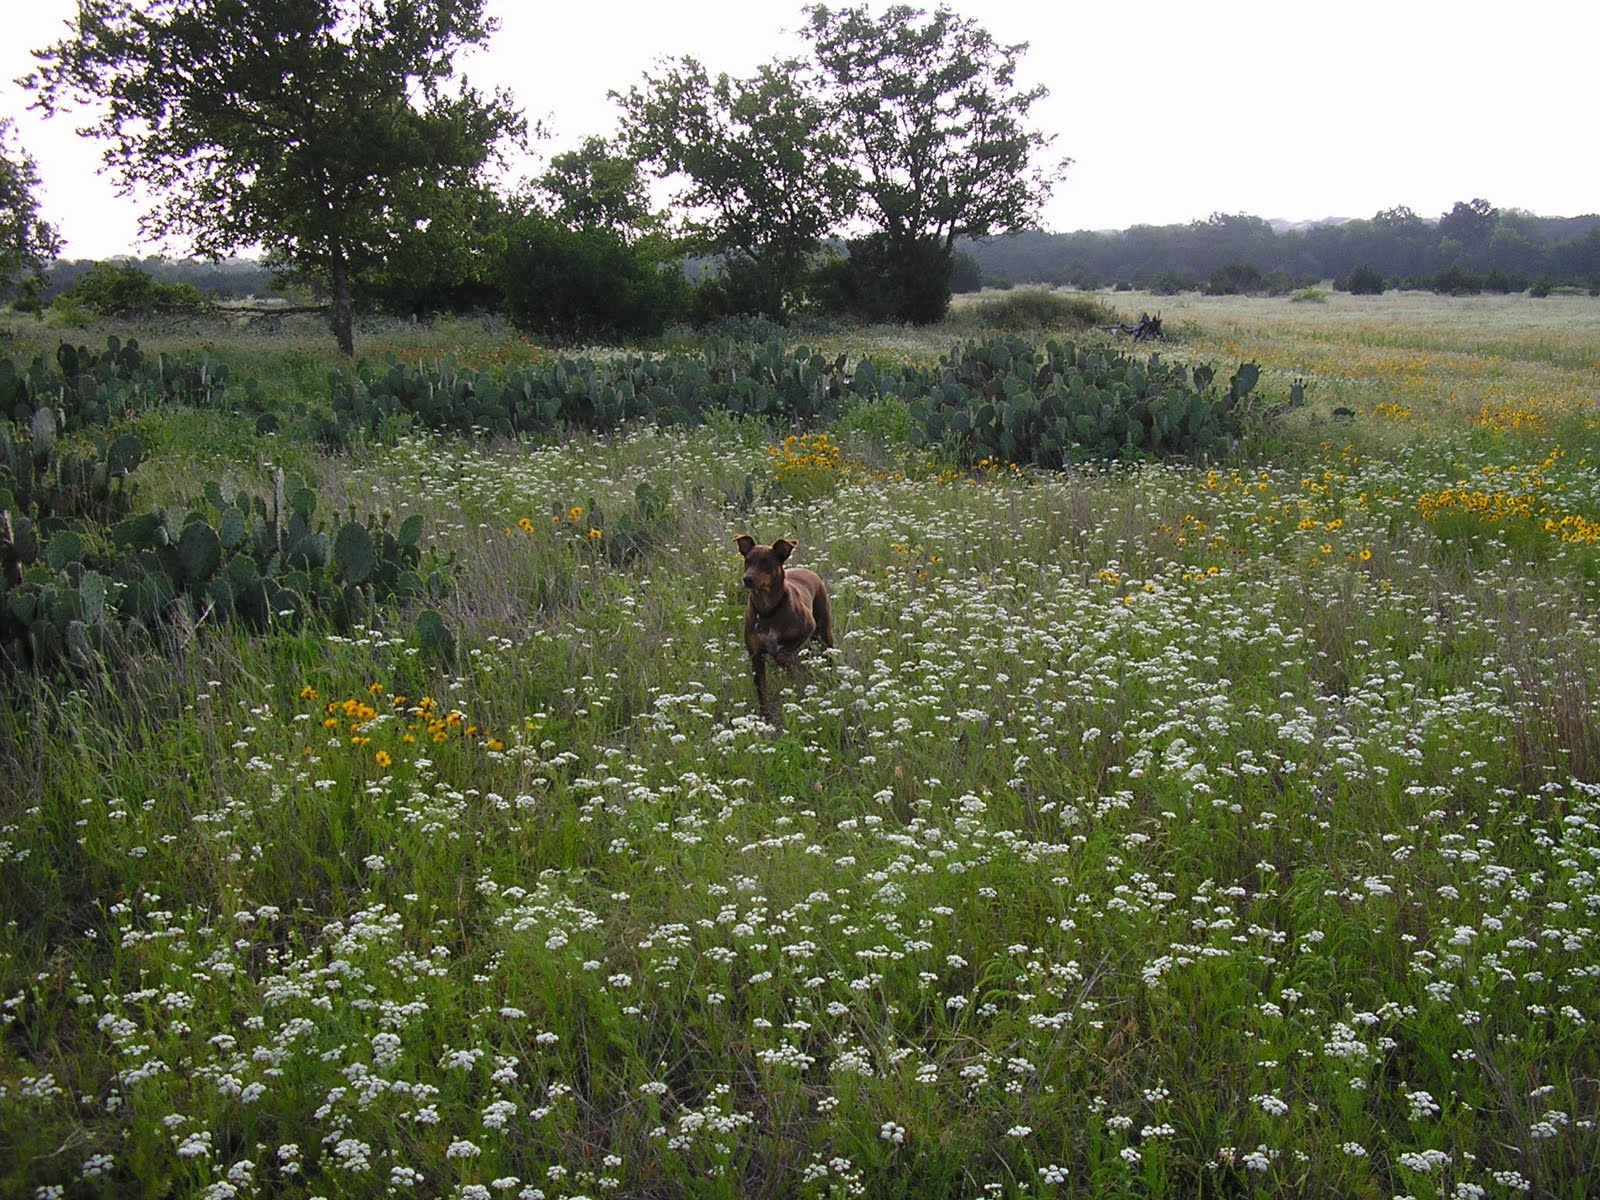 Cute Dog in a Field